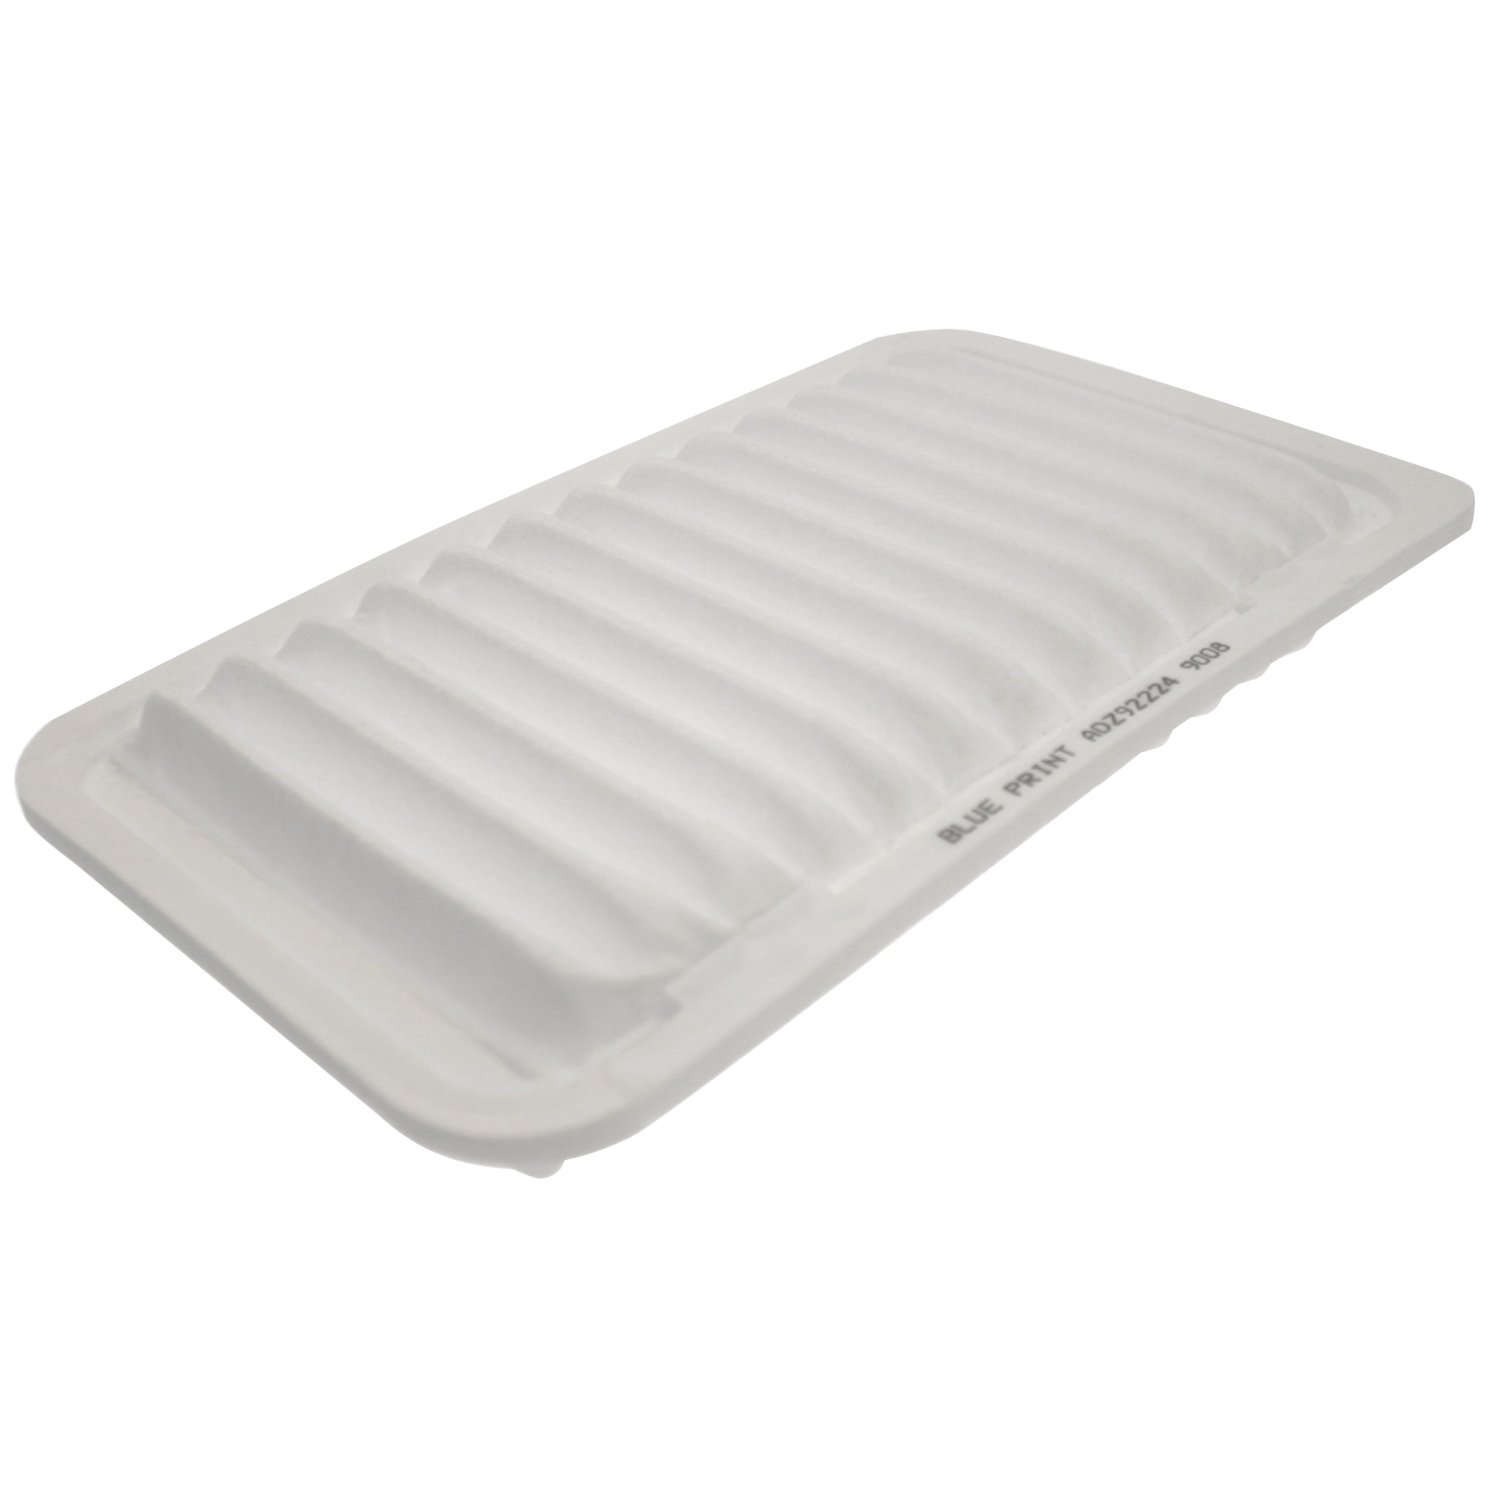 Blue Print ADZ92224 Air Filter, pack of one